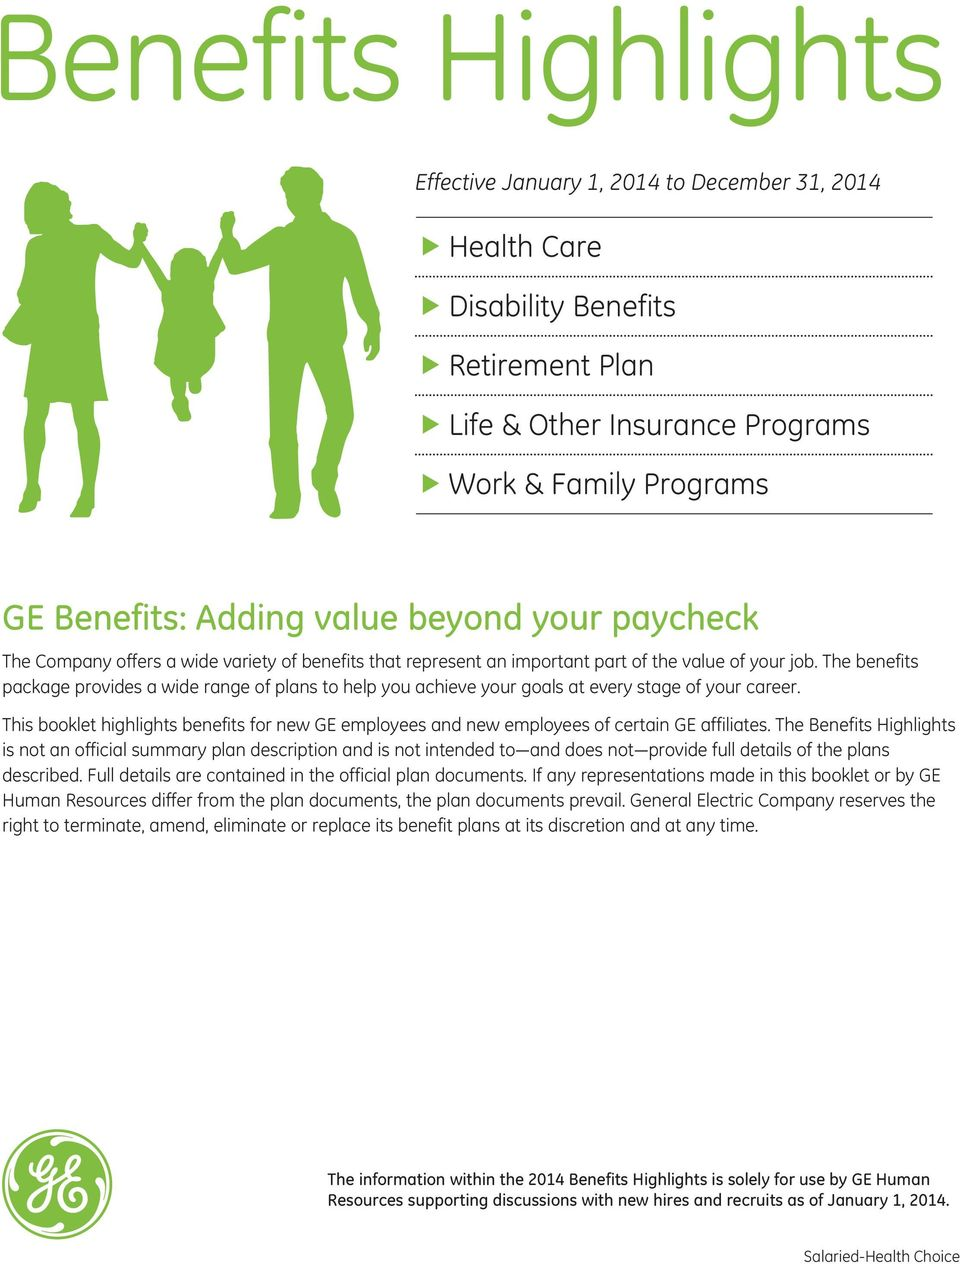 The benefits package provides a wide range of plans to help you achieve your goals at every stage of your career.